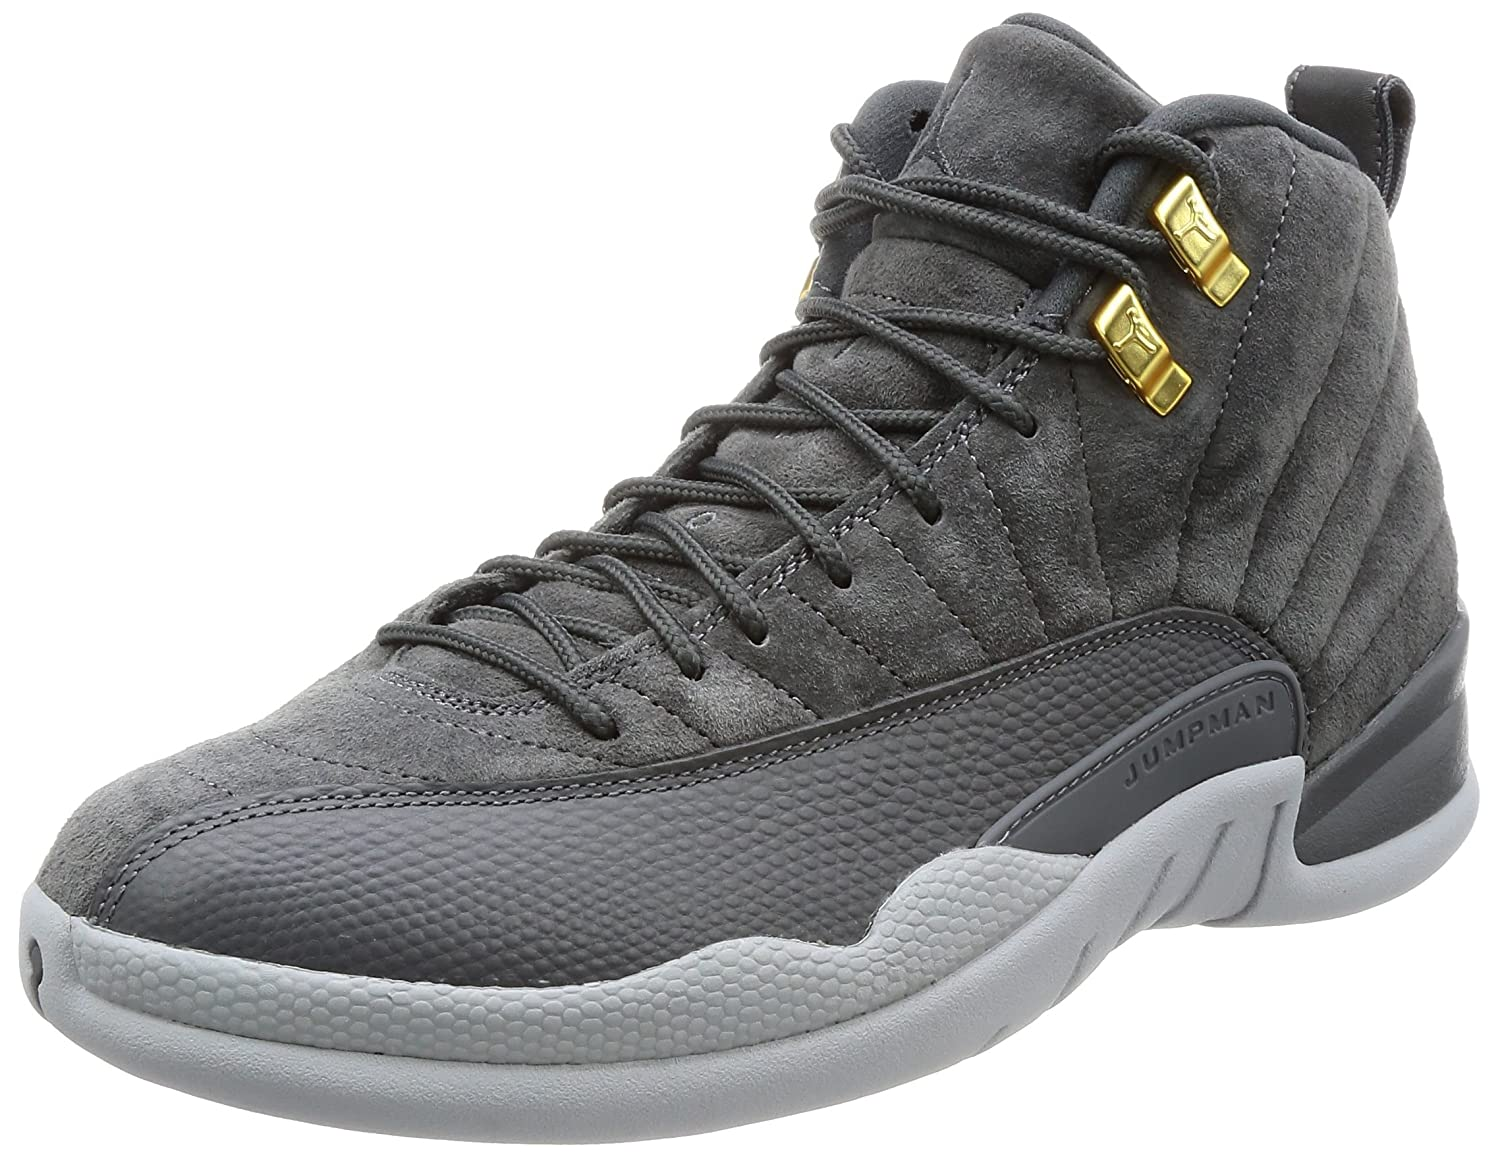 sale retailer 9ce45 a2601 ... spain nike air jordan 12 retro dark grey 130690 005 12 associate  degree.de 7a6c3